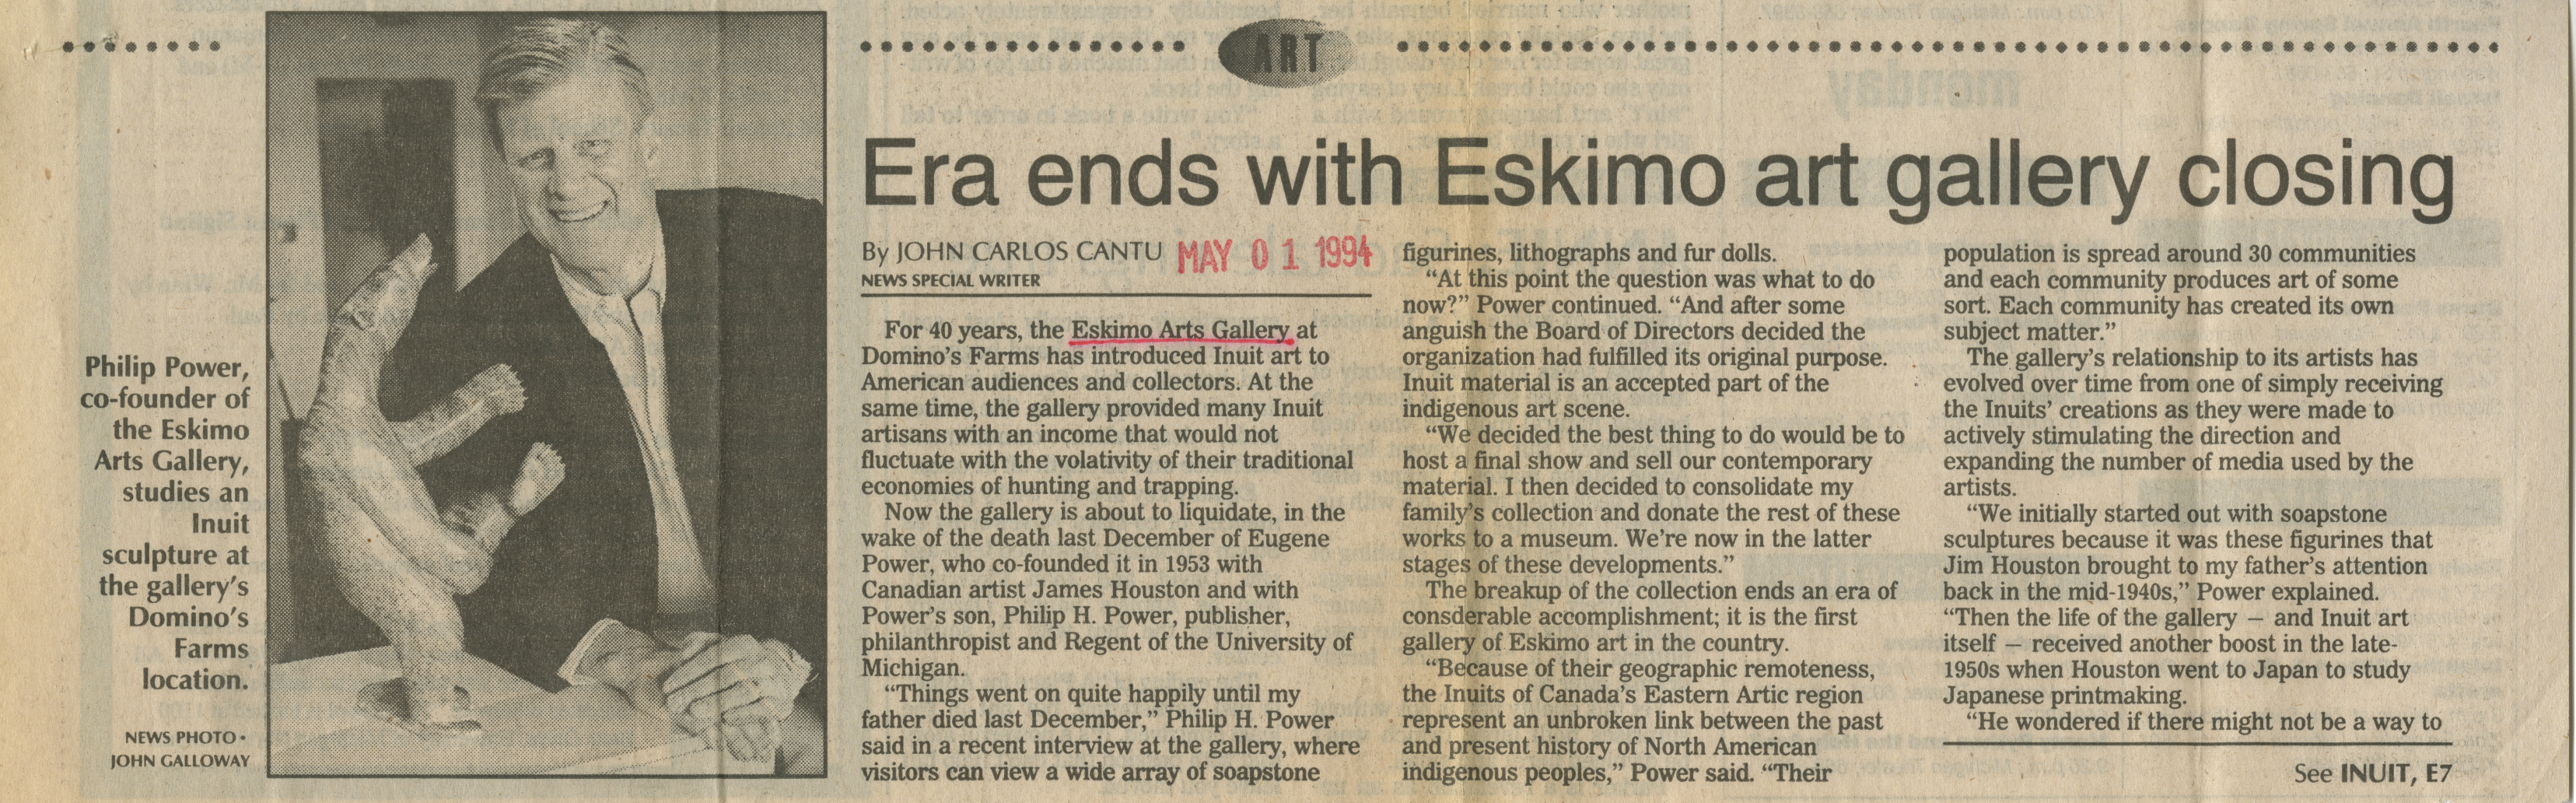 Era ends with Eskimo art gallery closing image